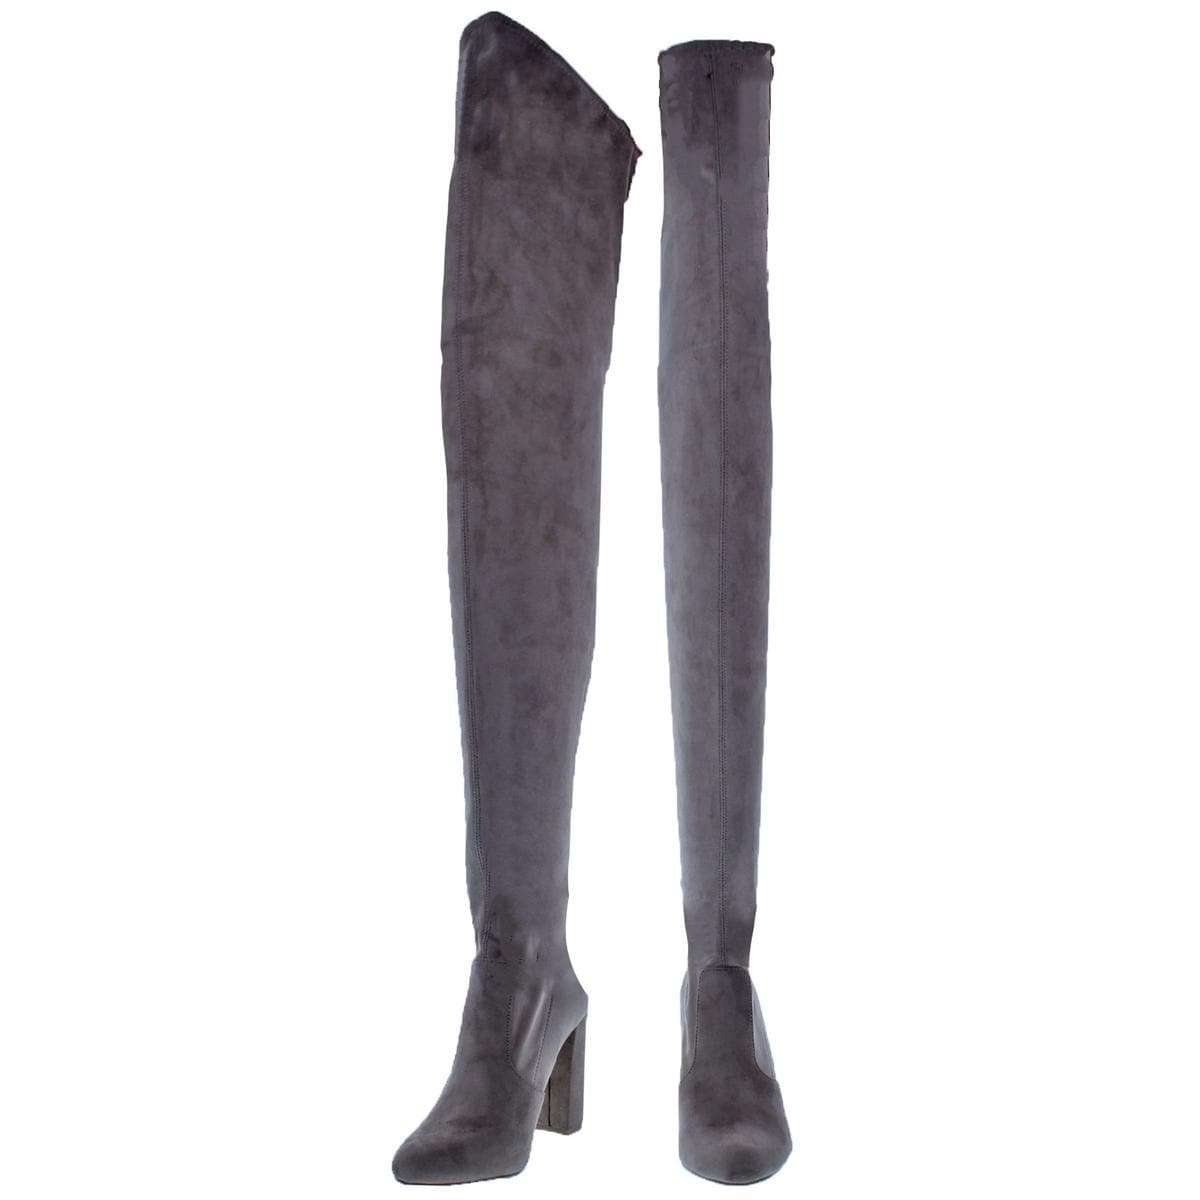 6e890fb42670 Shop Steve Madden Womens Elektric Thigh-High Boots Faux Suede Tall - On  Sale - Ships To Canada - Overstock - 24030625